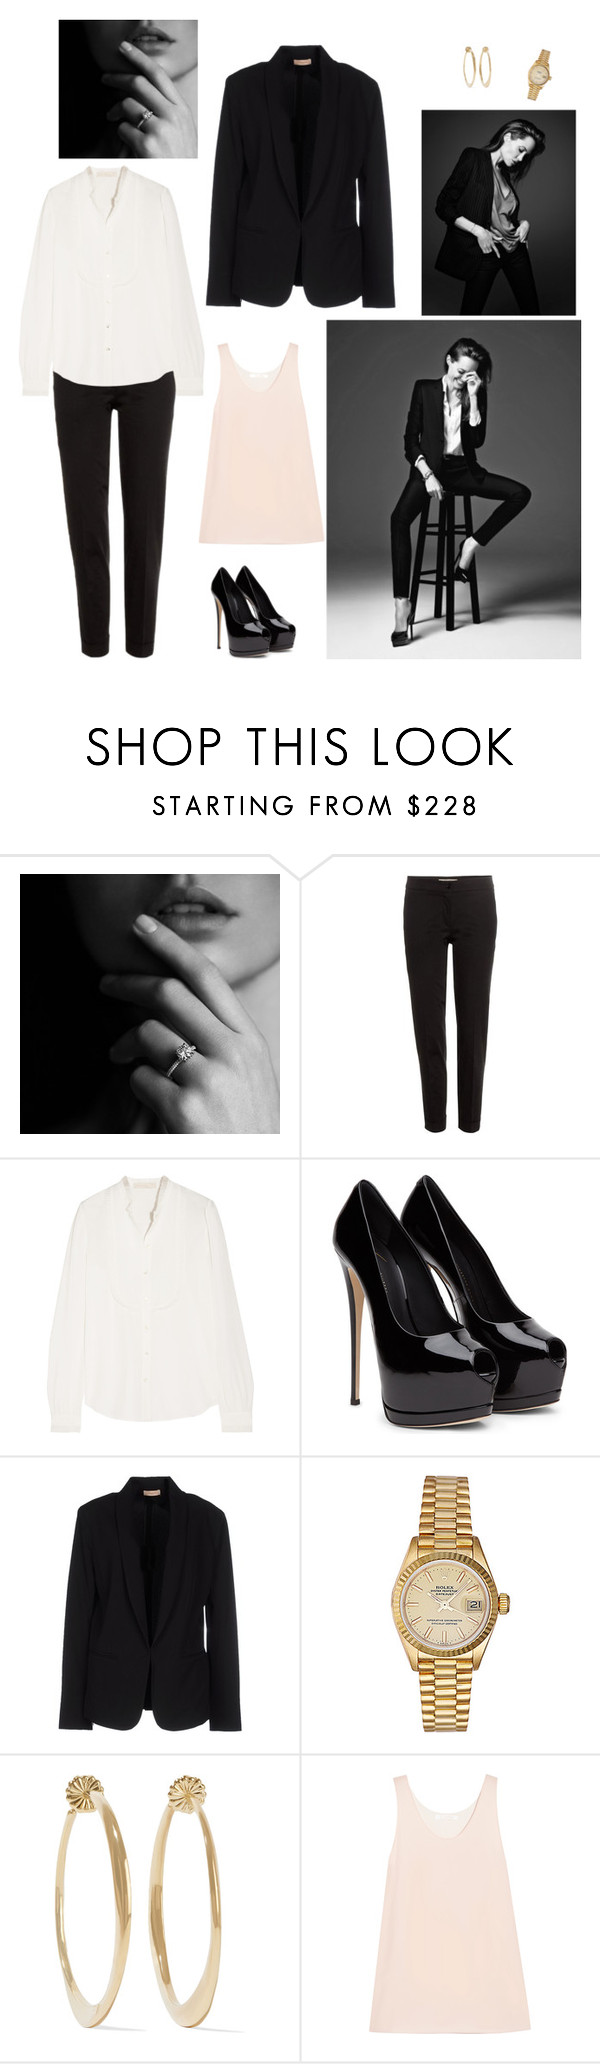 """""""Untitled #24"""" by khalitovagt-1 ❤ liked on Polyvore featuring Etro, Vanessa Bruno, Maesta, Rolex, Ippolita and Chloé"""